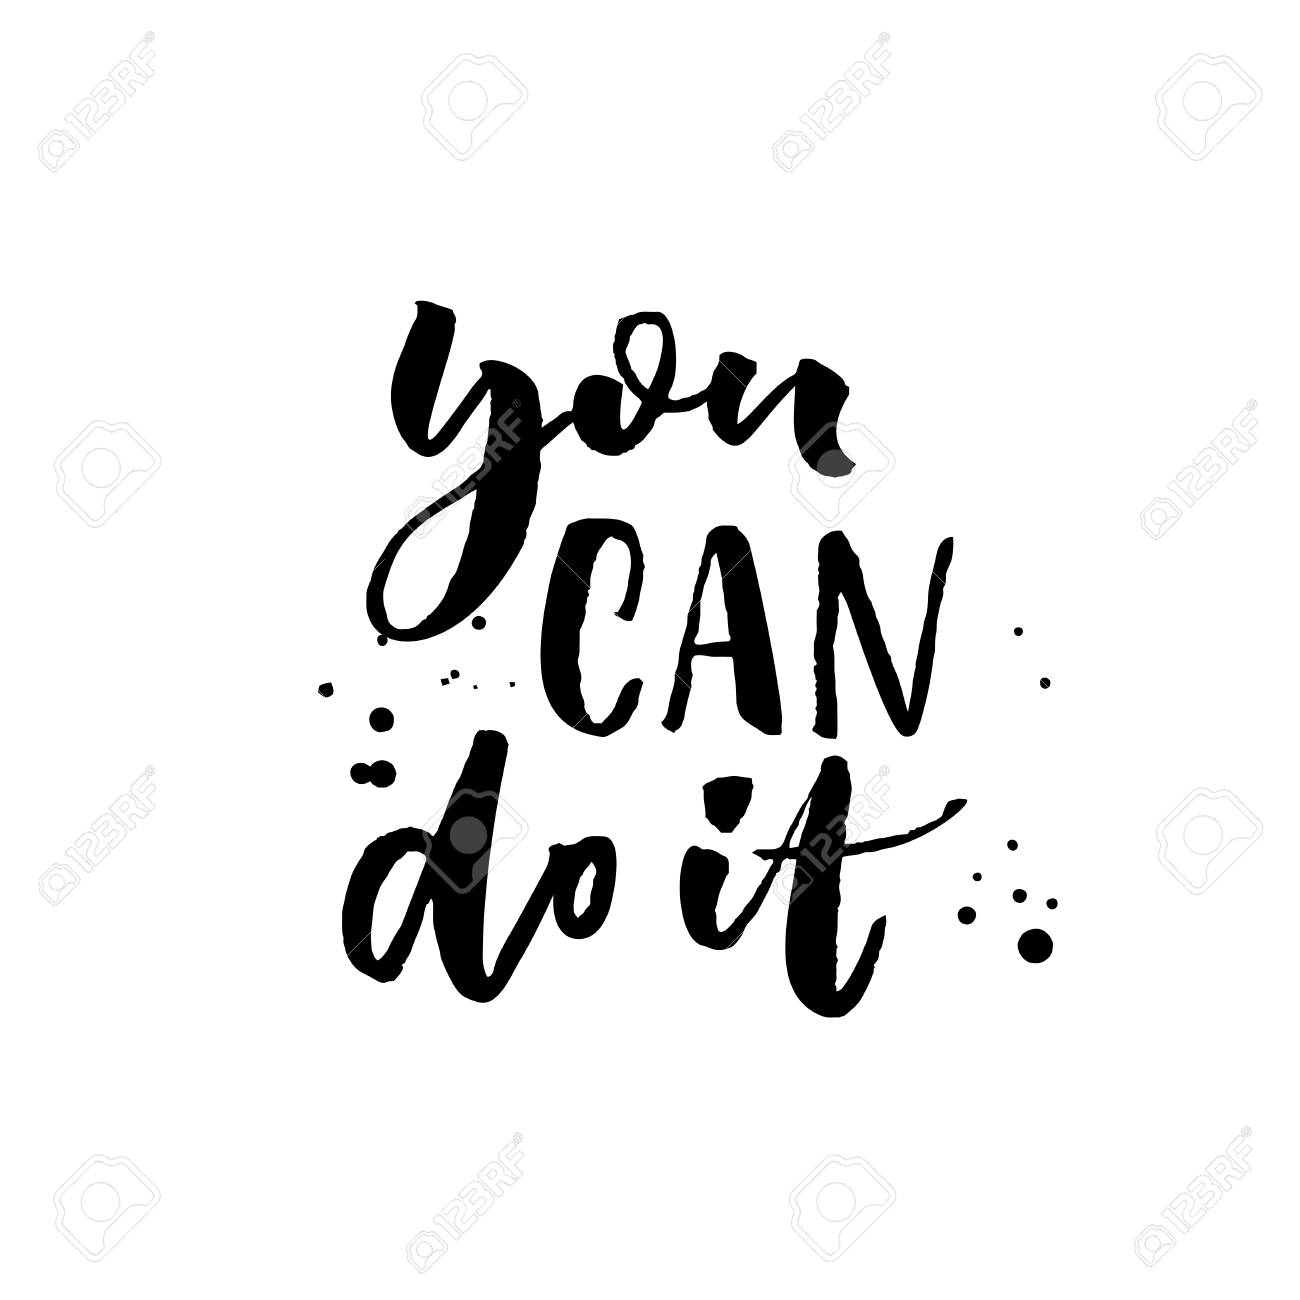 You Can Do It Motivational Quote Calligraphy Black Ink On